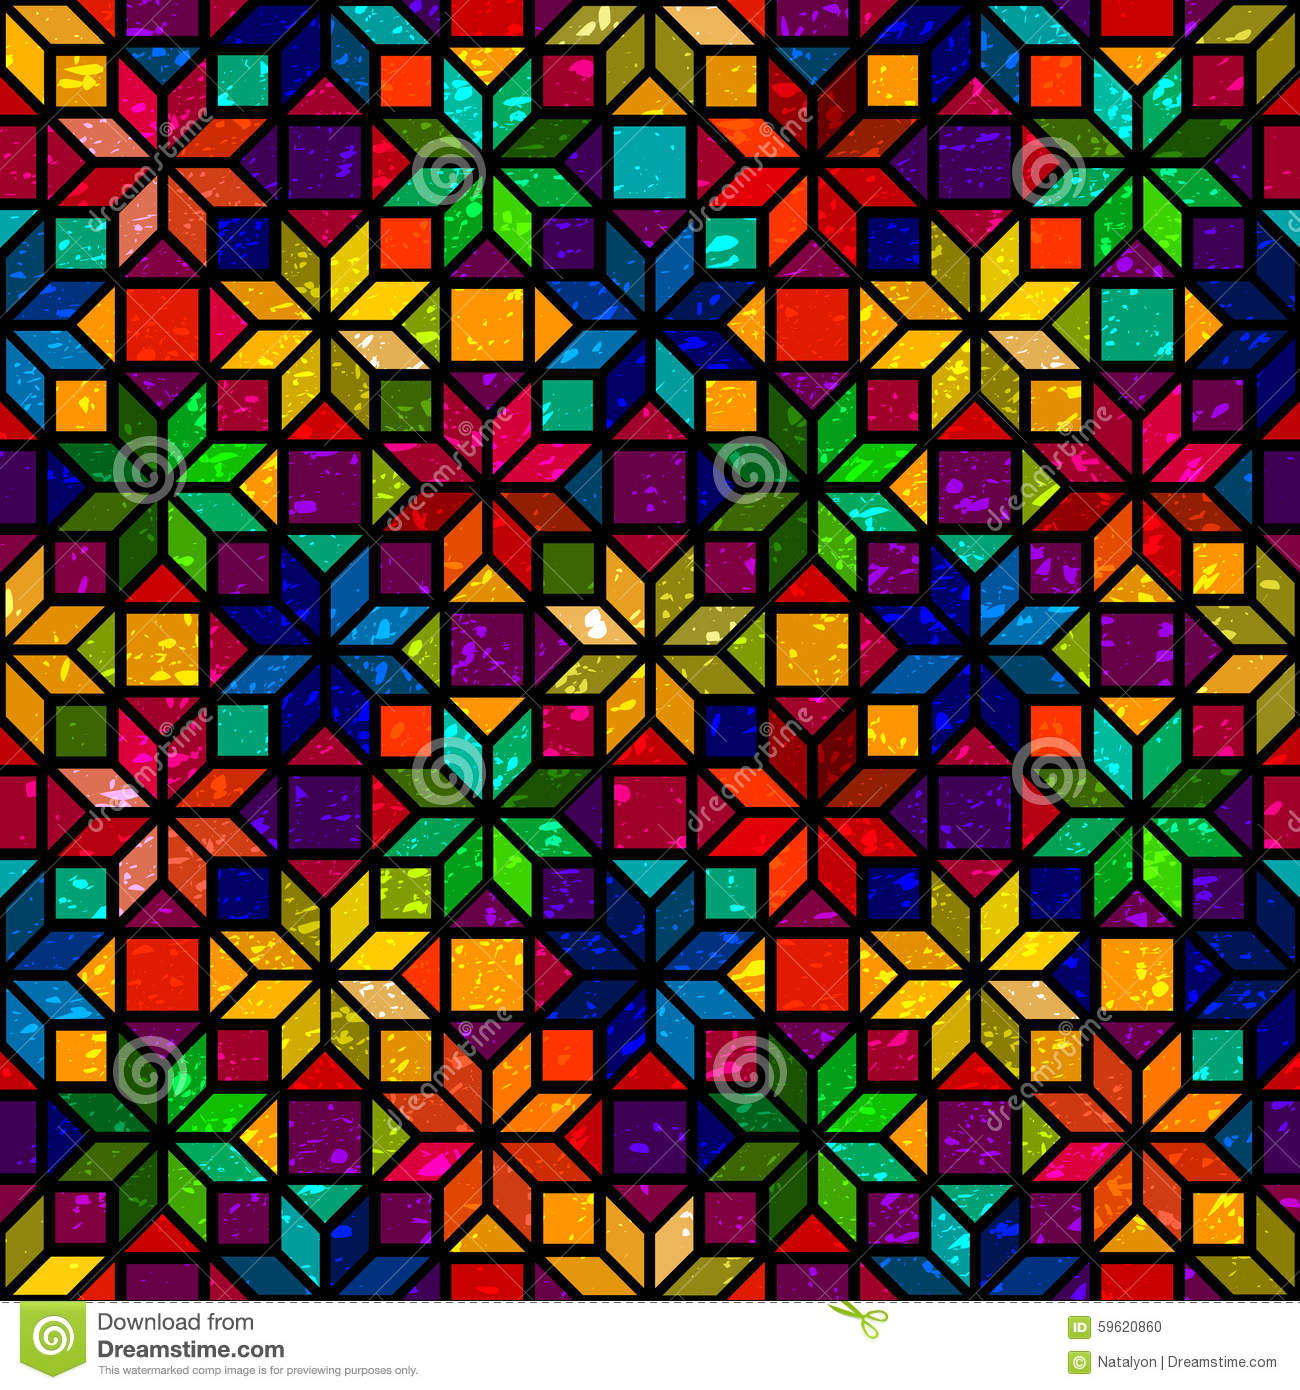 Star Shape Colorful Geometric Stained Glass Seamless Pattern Vector